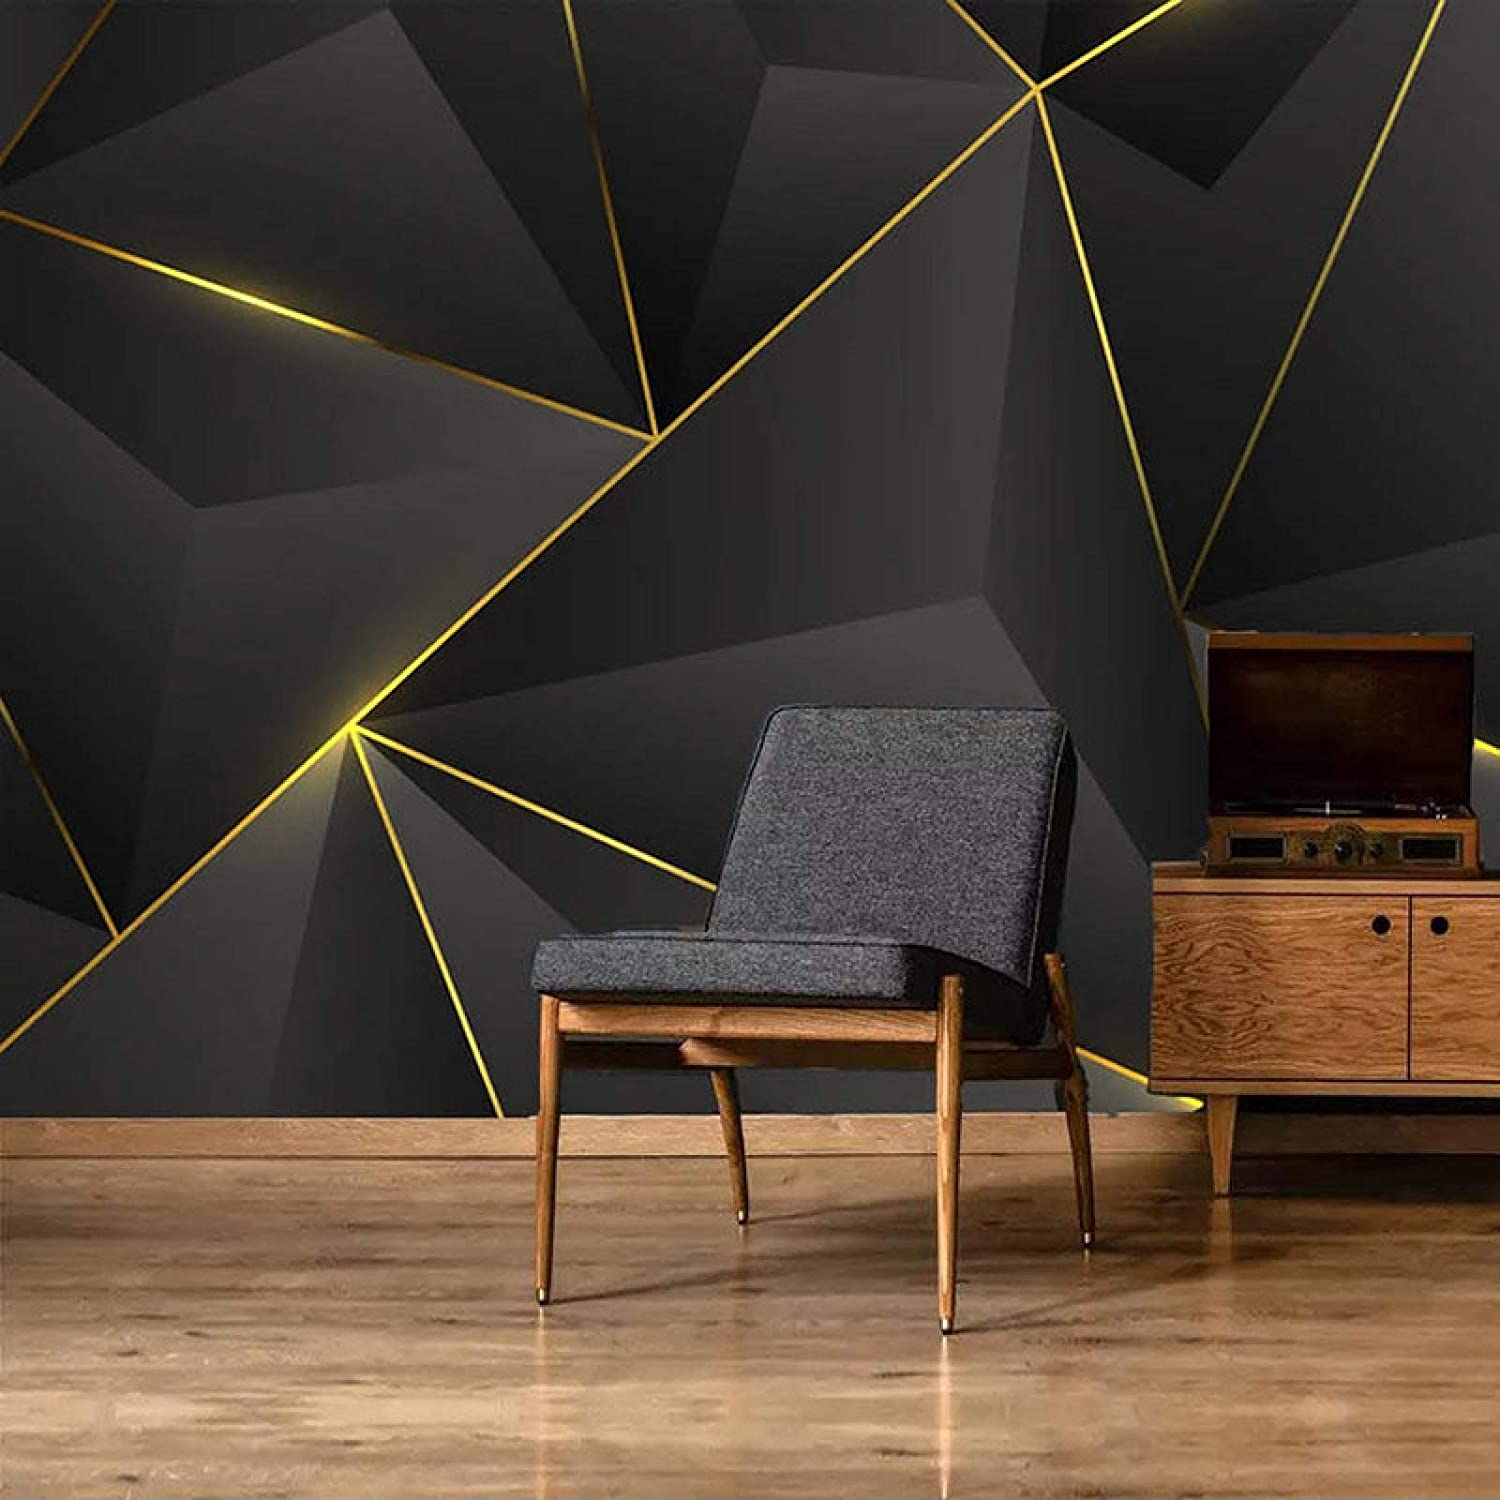 KMAOMAOZSH specialty shop Wall Mural Wallpaper 3D Complete Free Shipping Striped Wallpa DIY Gold Large